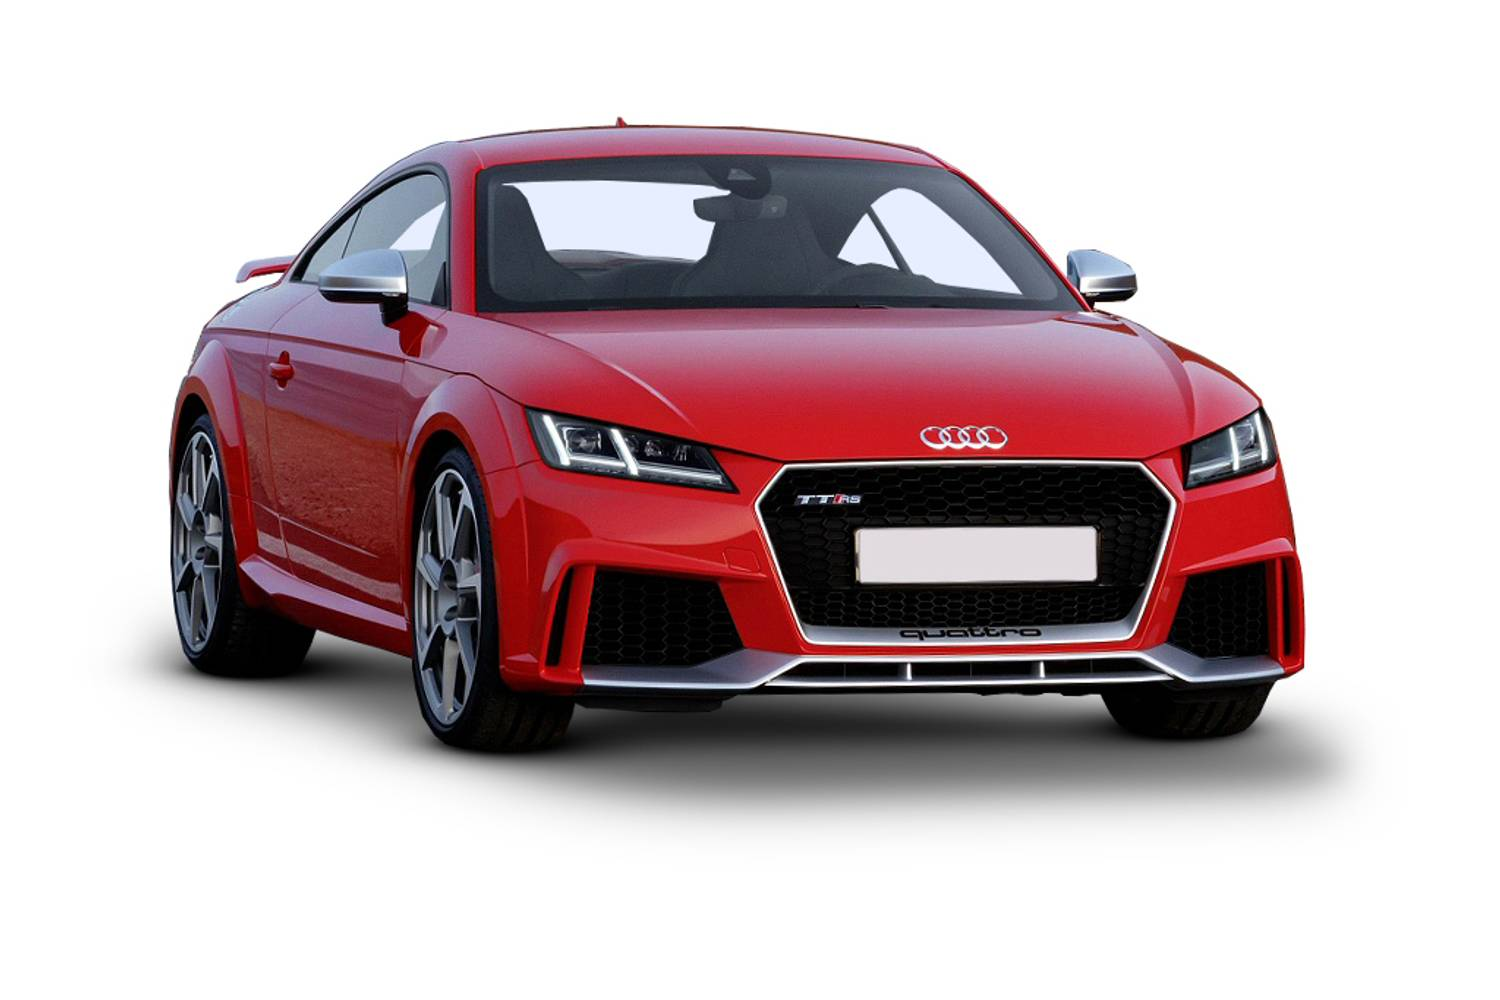 new audi tt rs coupe 2 5t fsi tt rs quattro 2 door s tronic 2016 for sale. Black Bedroom Furniture Sets. Home Design Ideas